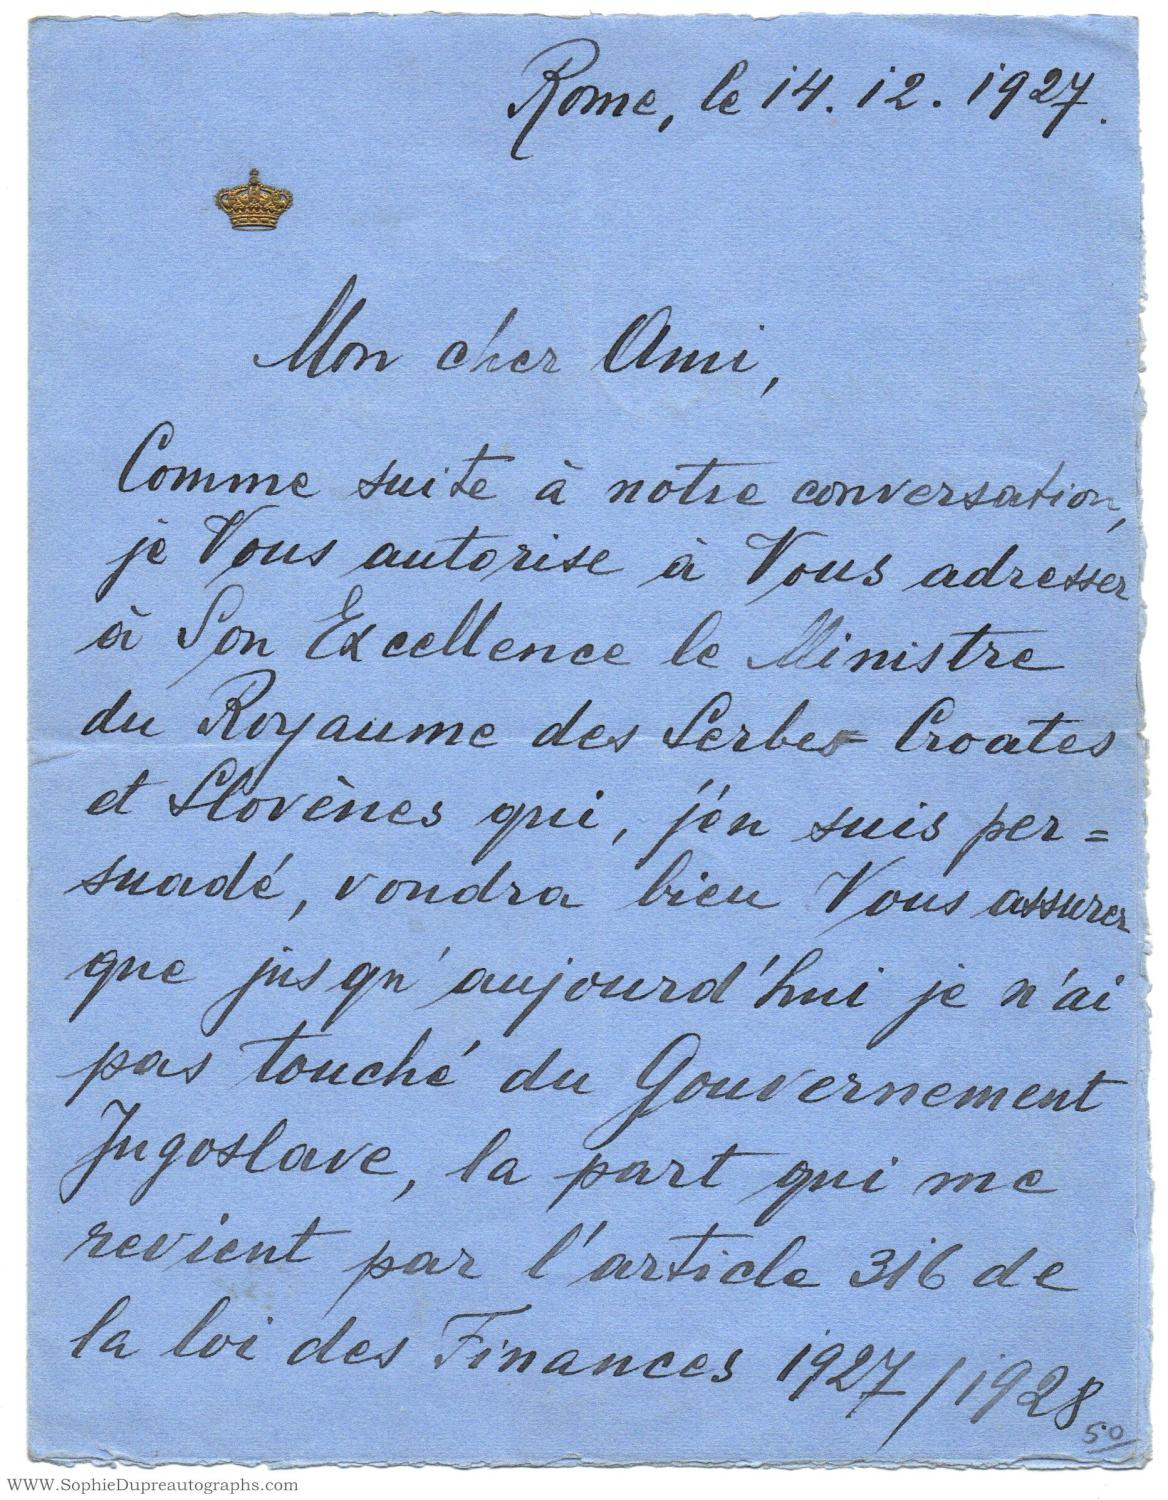 viaLibri ~ Autograph Letter Signed, in French with